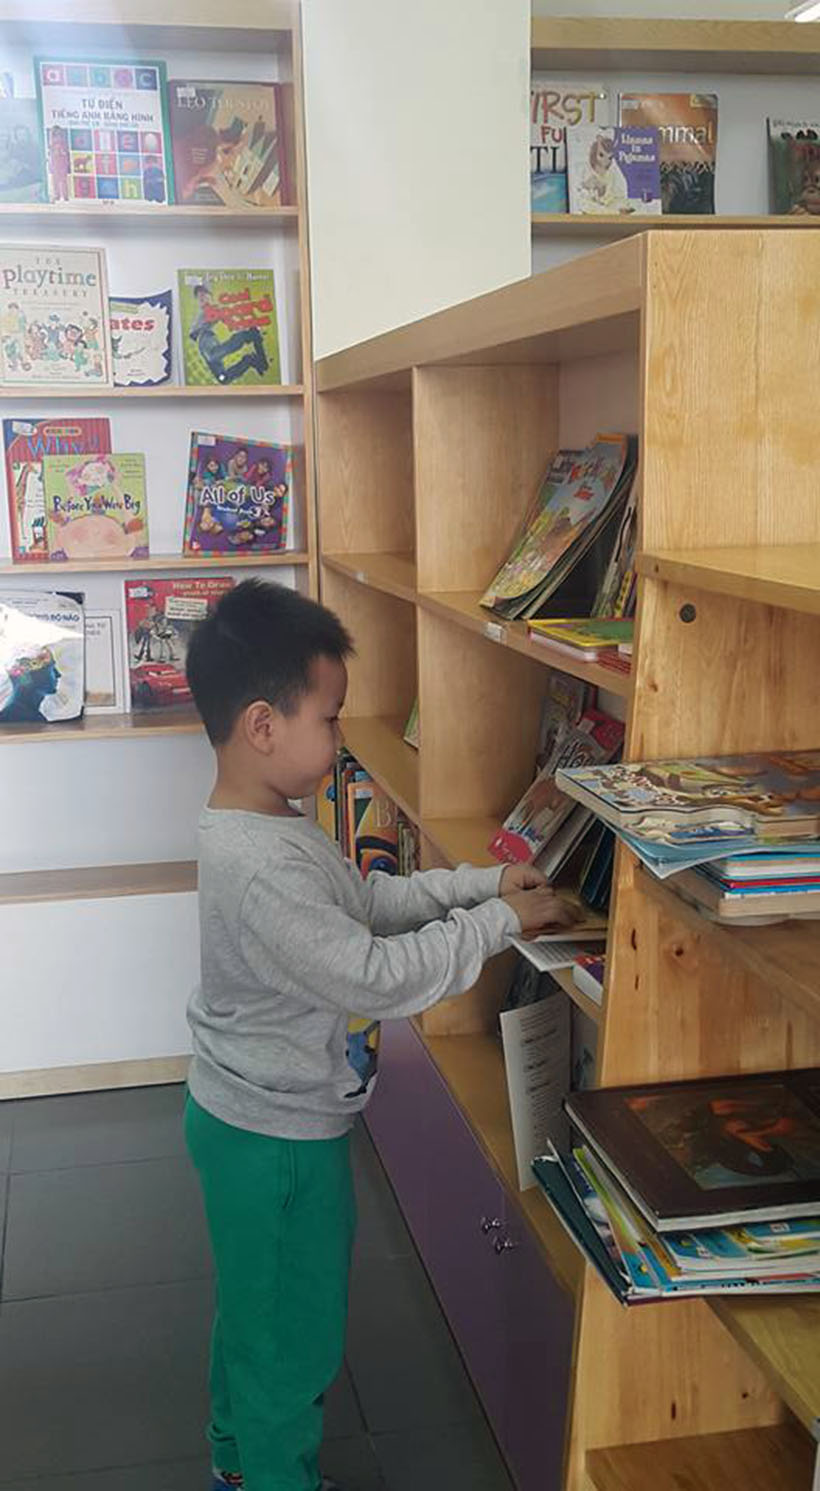 Tao cho tre thoi quen doc sach 6 Helping young children develop good reading habits at an early age